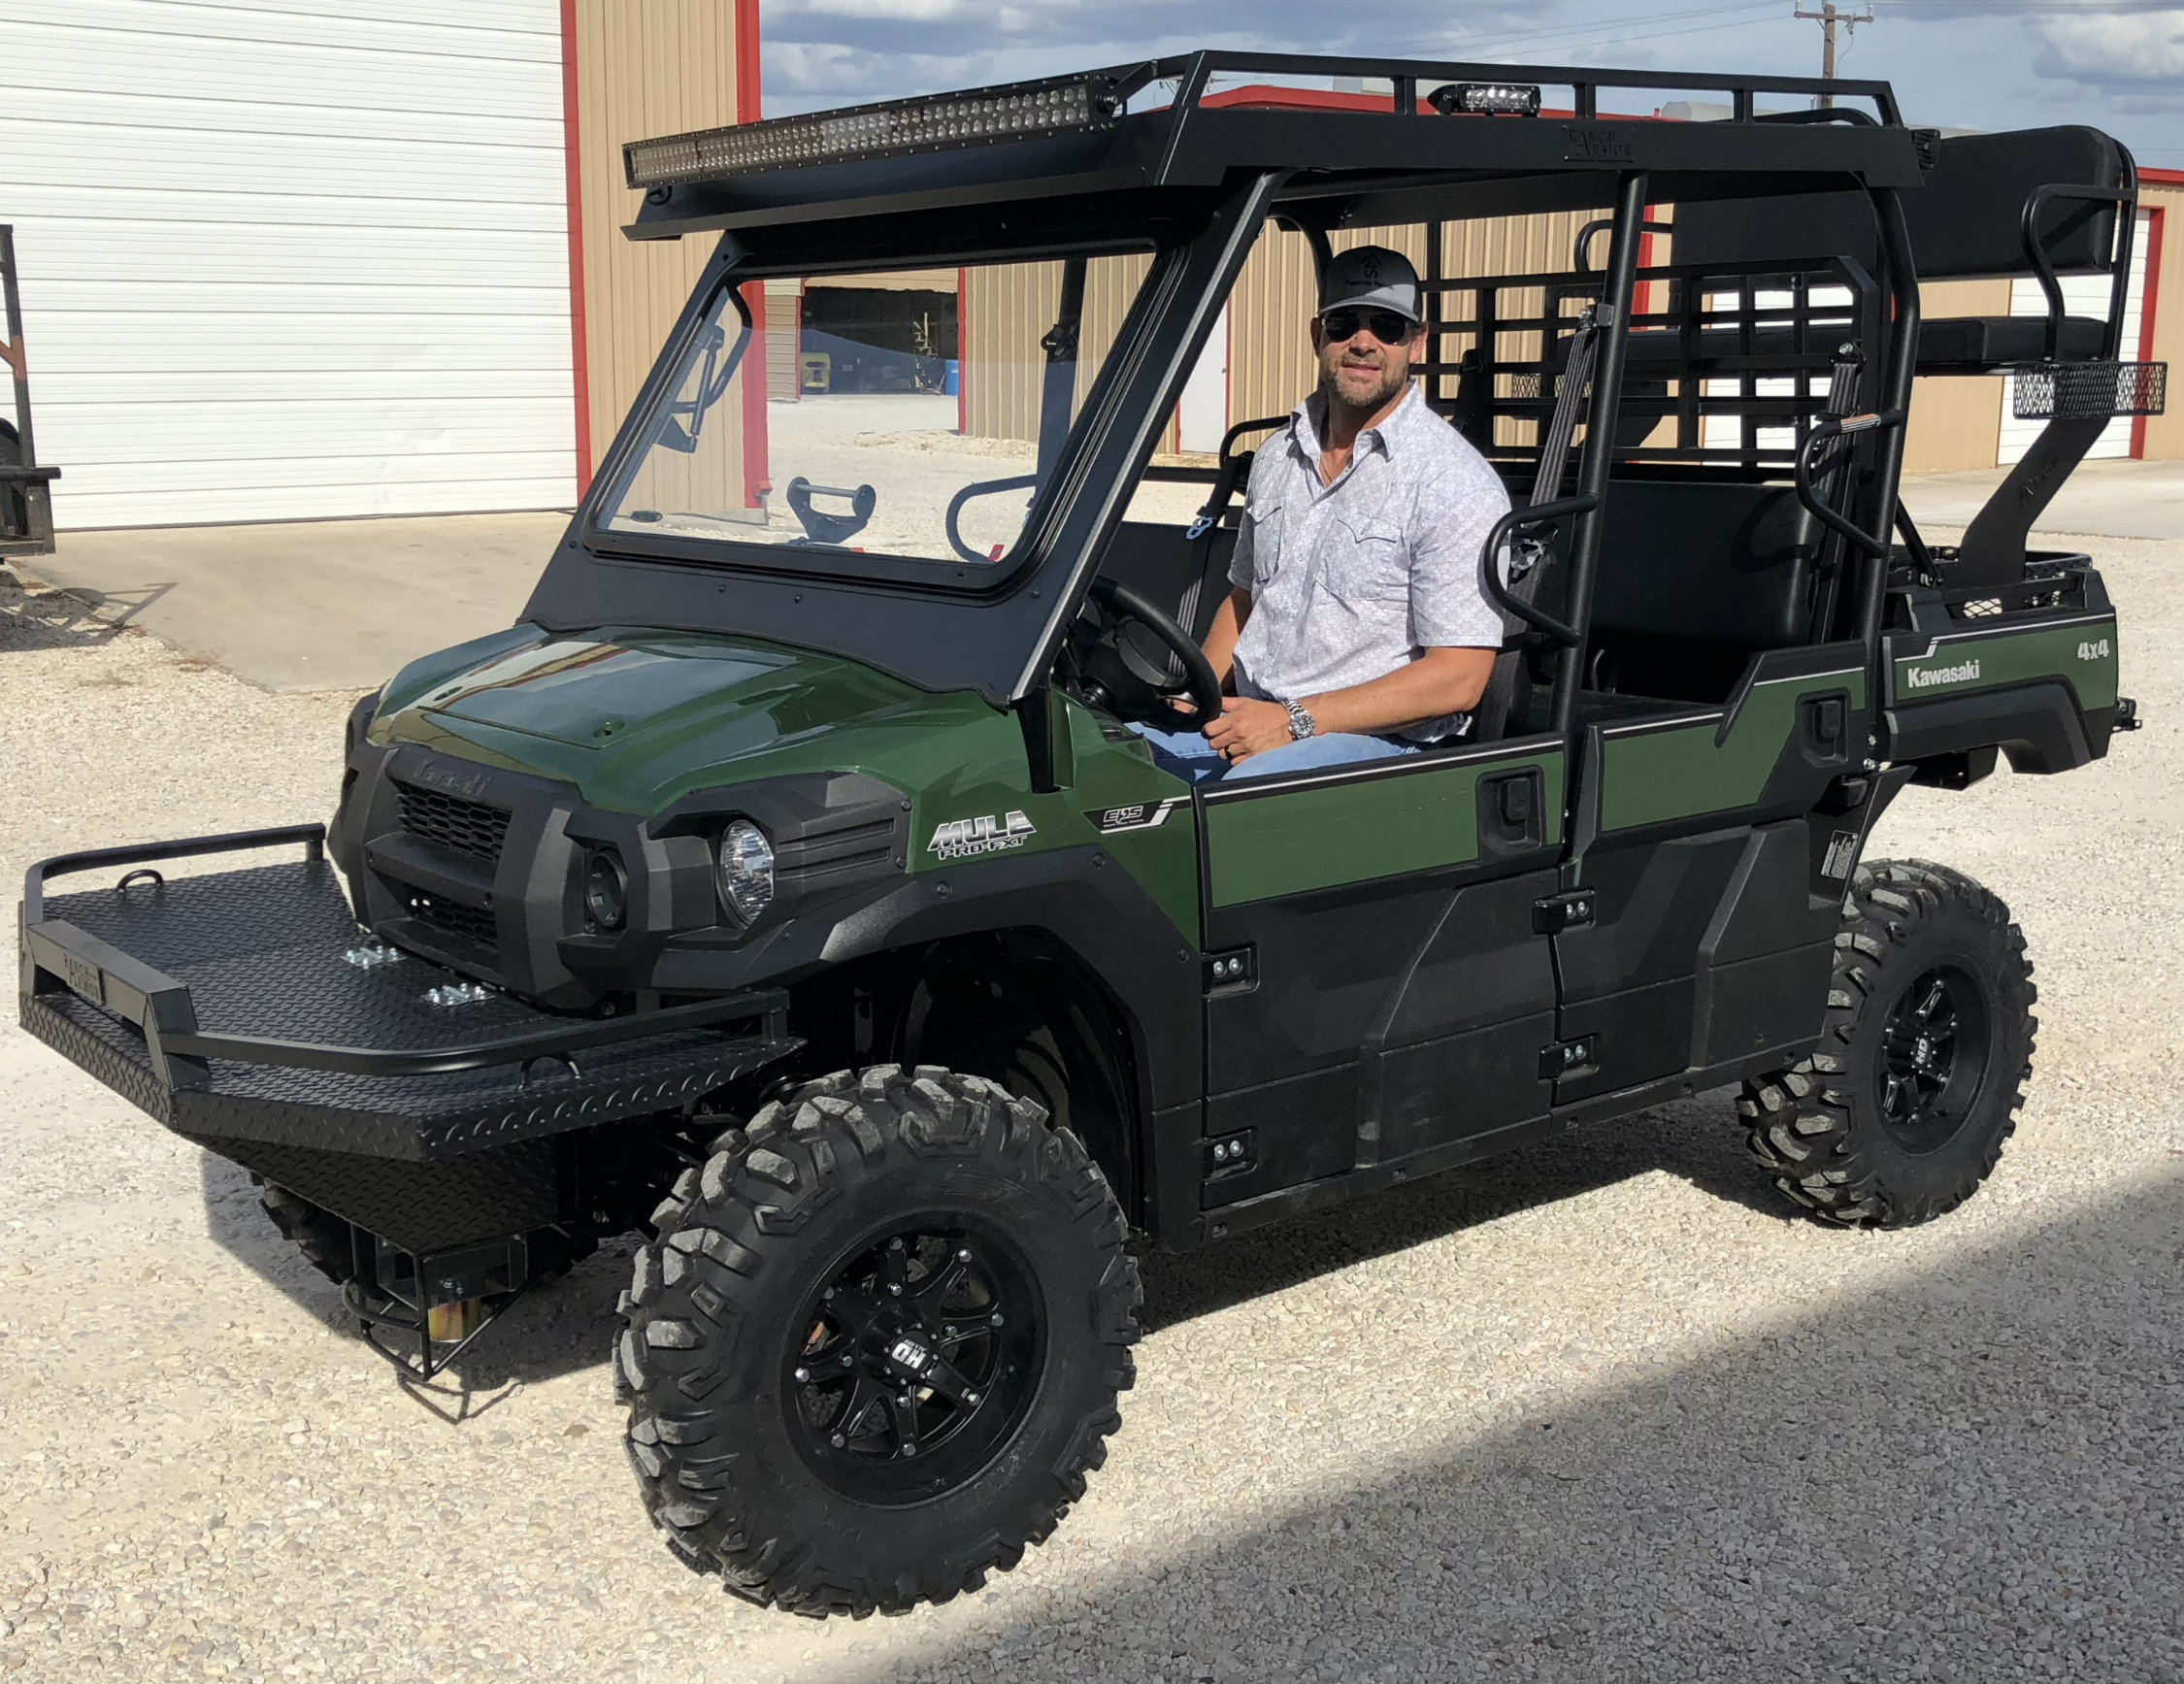 kawasaki-mule-pro-fxt-outfit-high-seat-metal-roof-feeder-front-bumper-basket-windshield.jpg